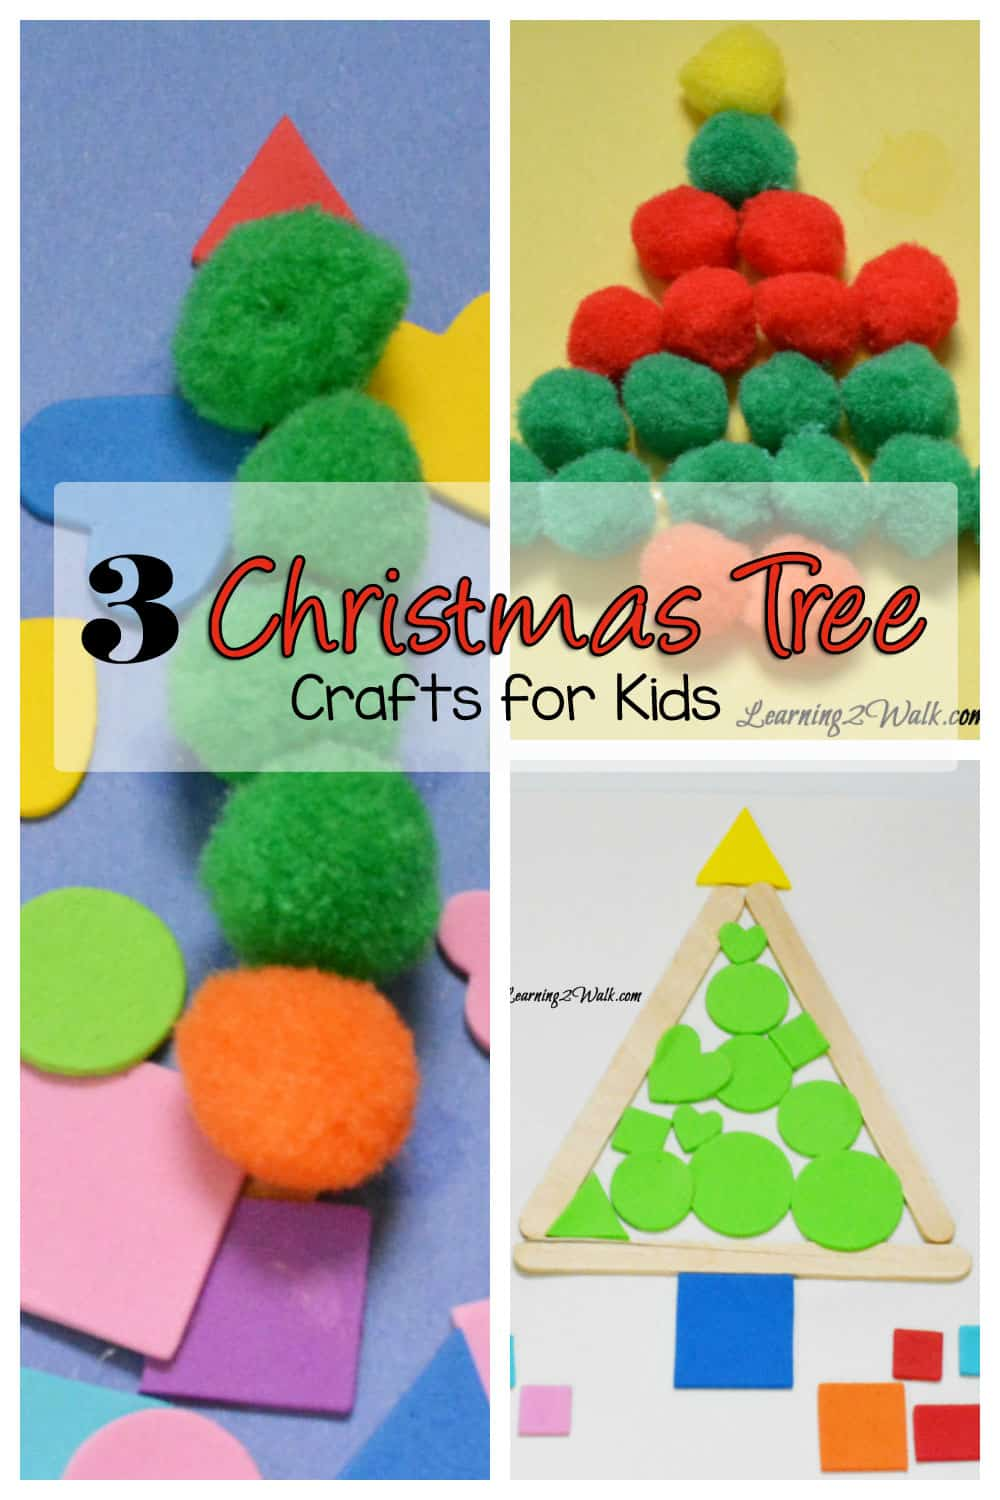 3 Easy Christmas Tree Crafts for Kids